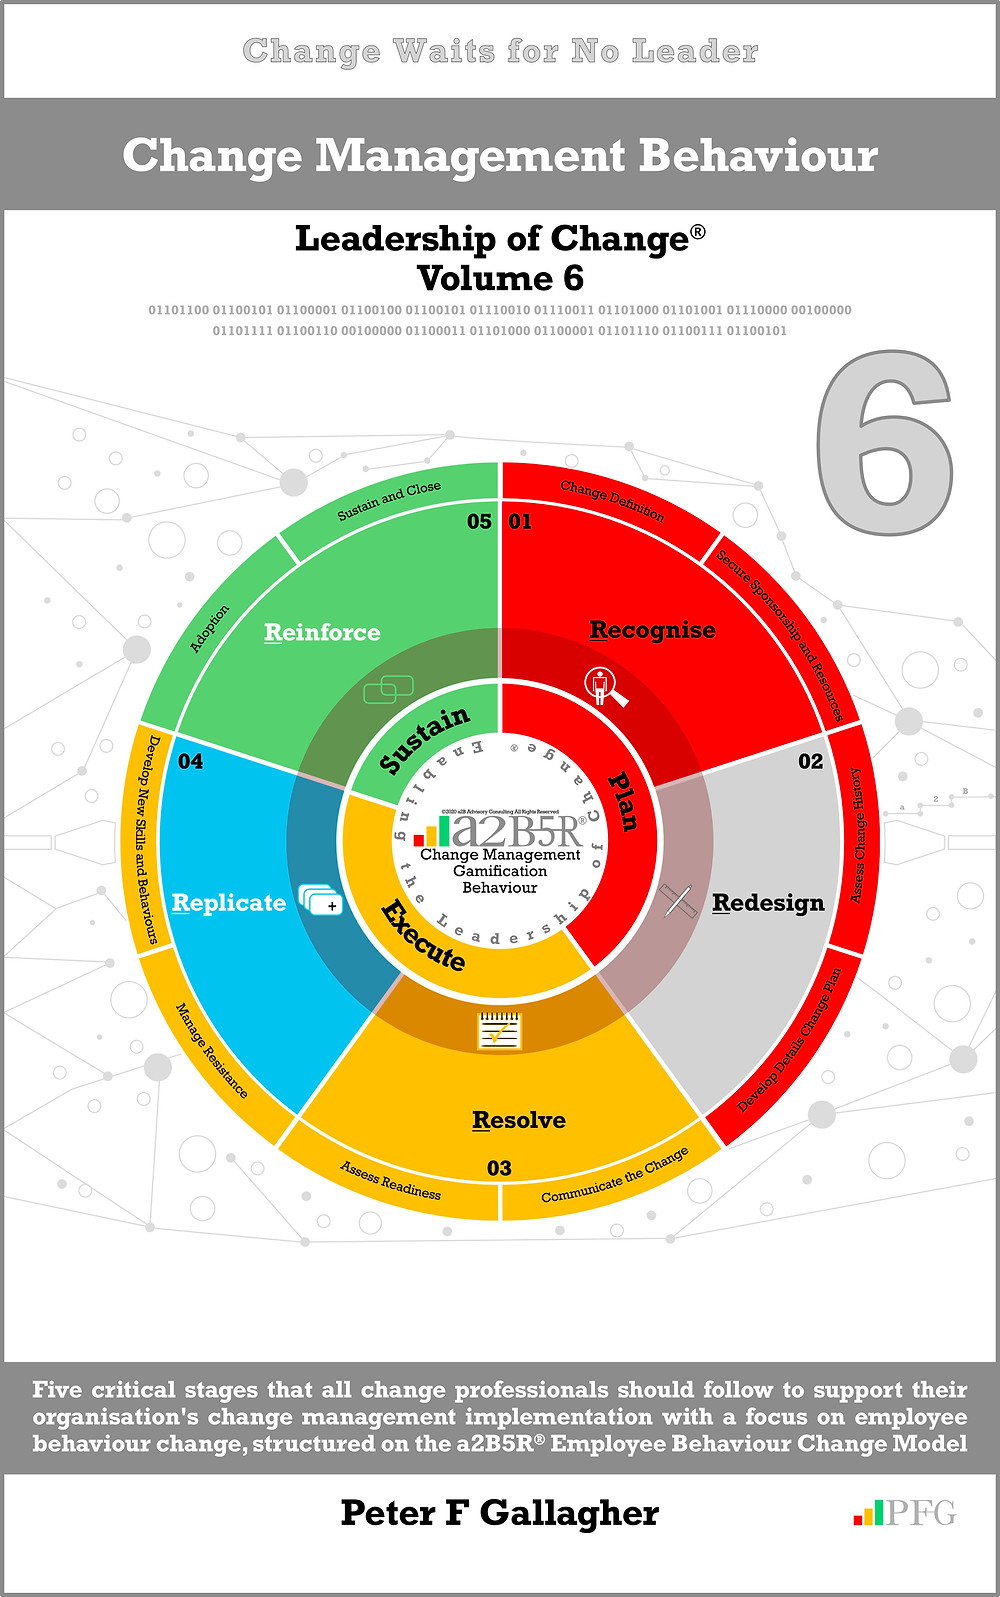 Change Management Behaviour - Leadership of Change® Volume 6, Change Management Book, Peter F Gallagher Change Management Expert, Five critical tasks that all change professionals should follow to support their organisation's change management implementation with a focus on employee behaviour change, a2B Change Management Framework,